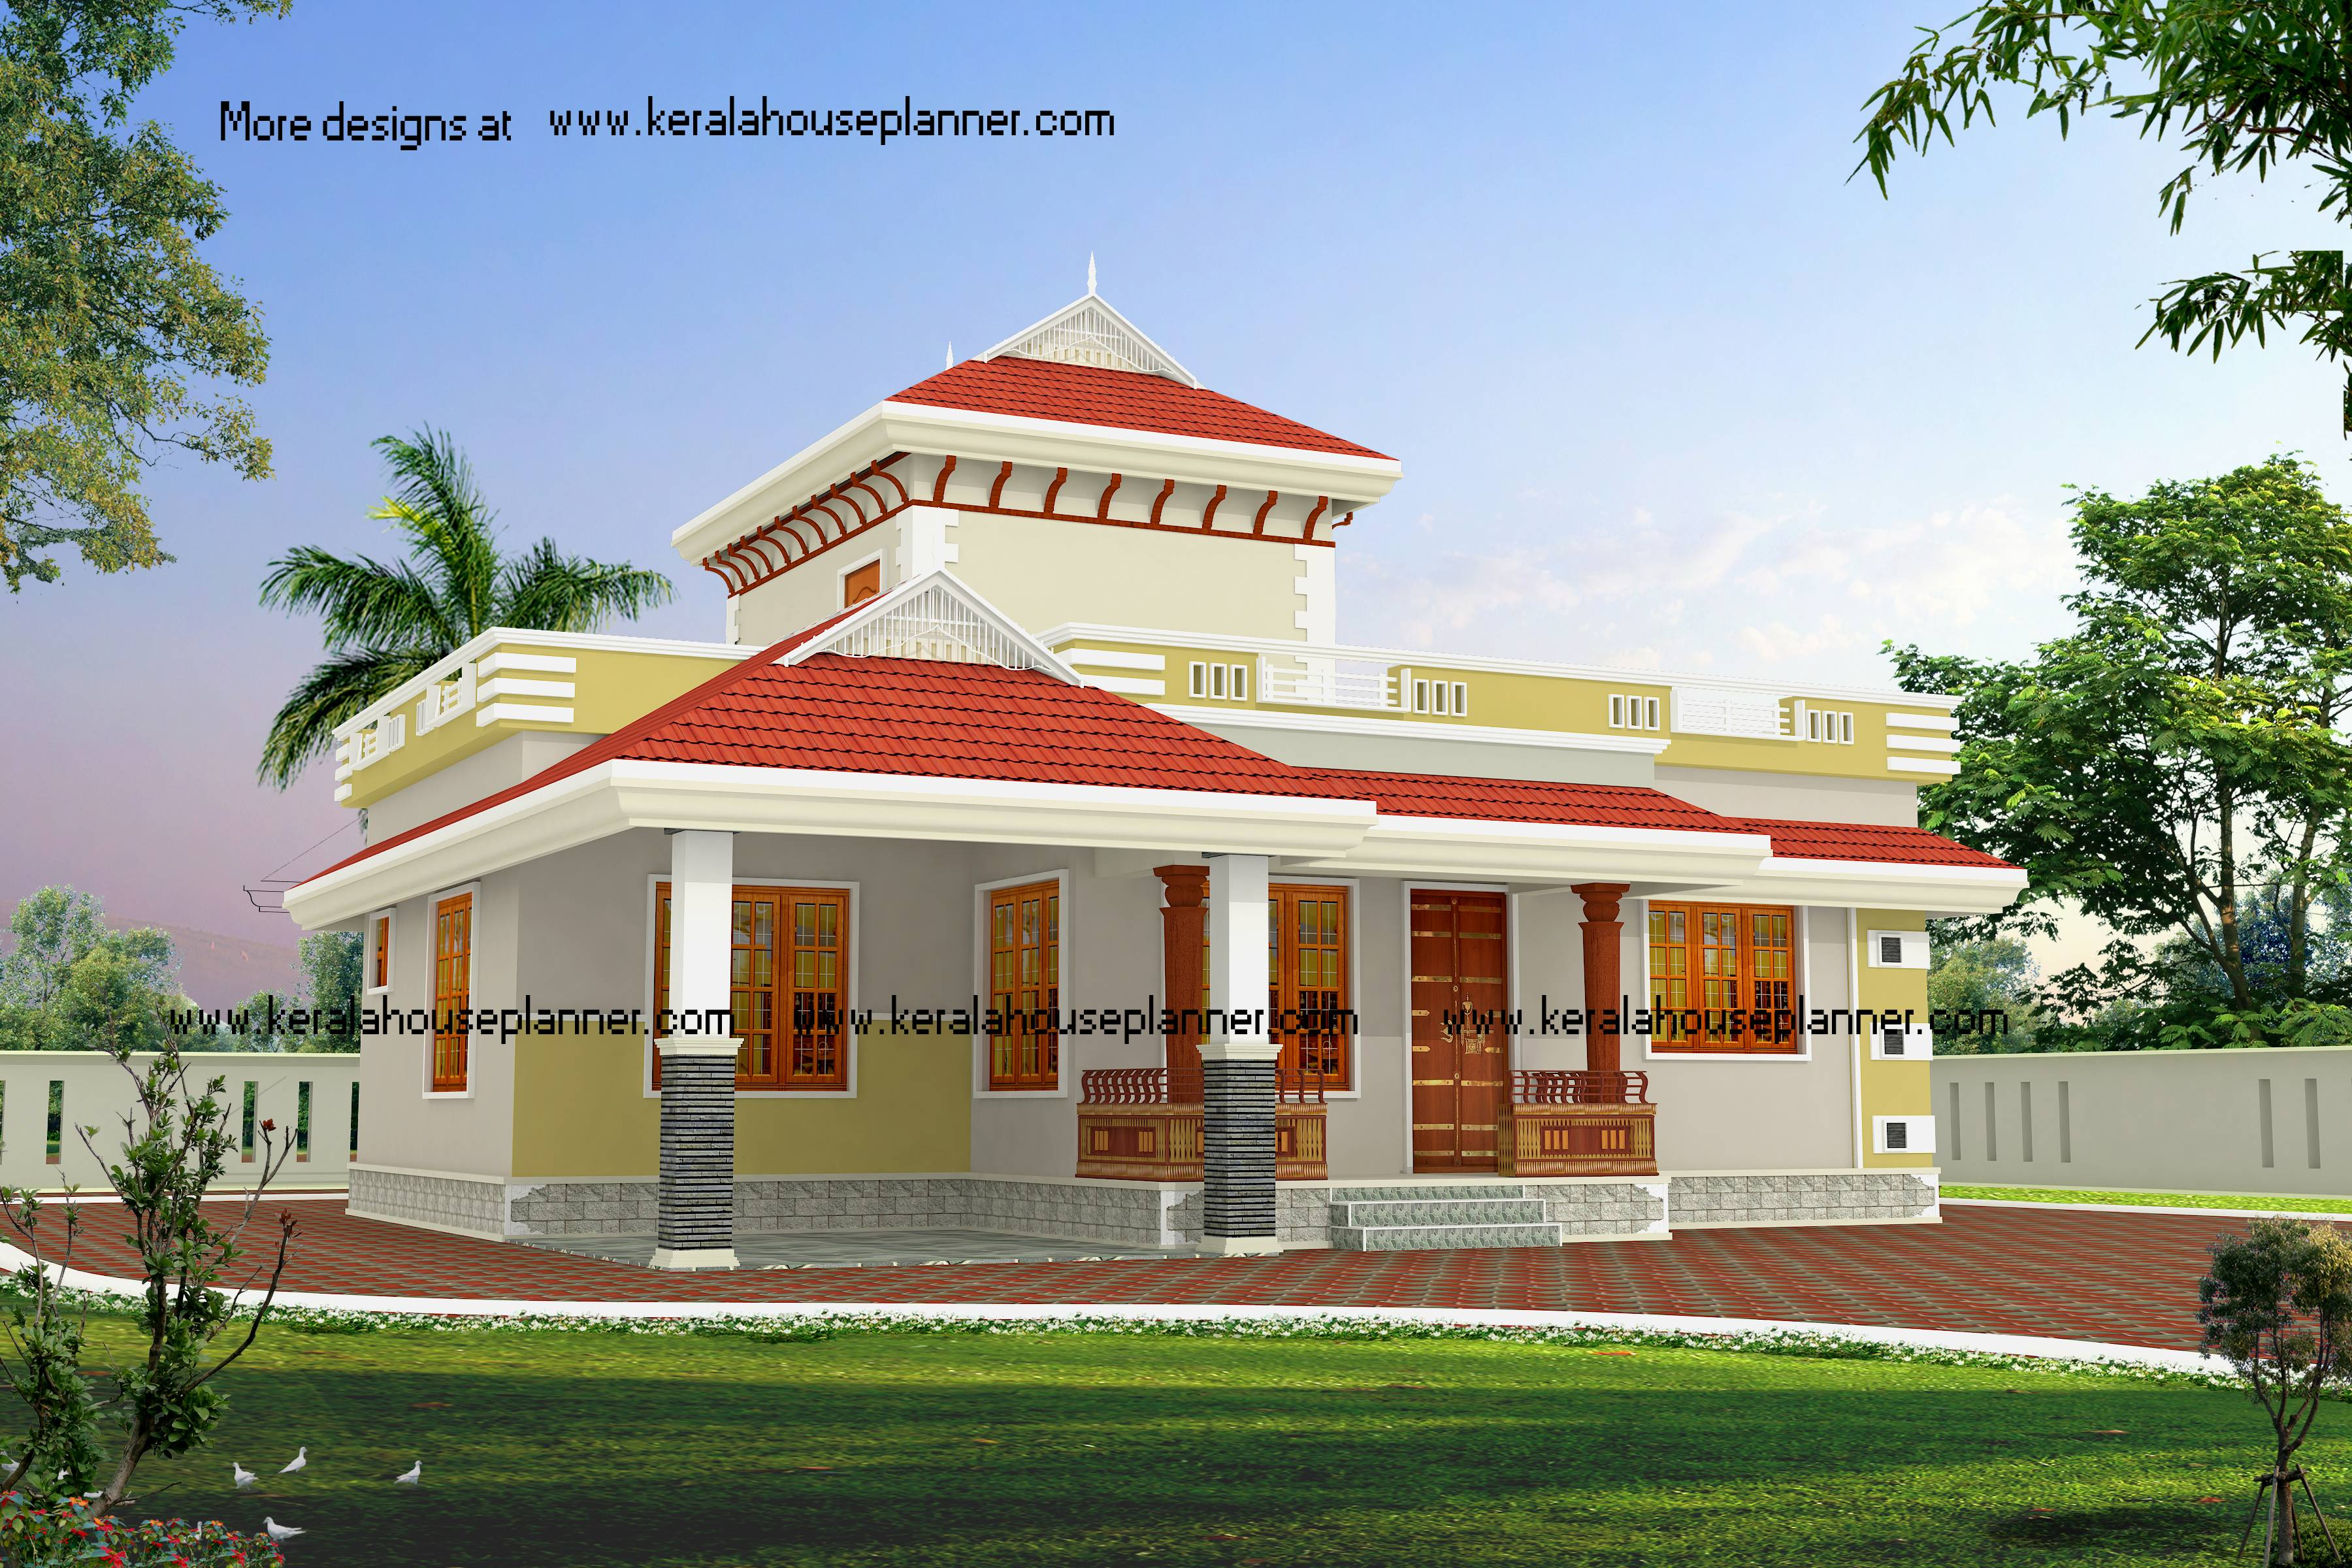 Image 1 Kerala Model House Plan Designs Kerala Style